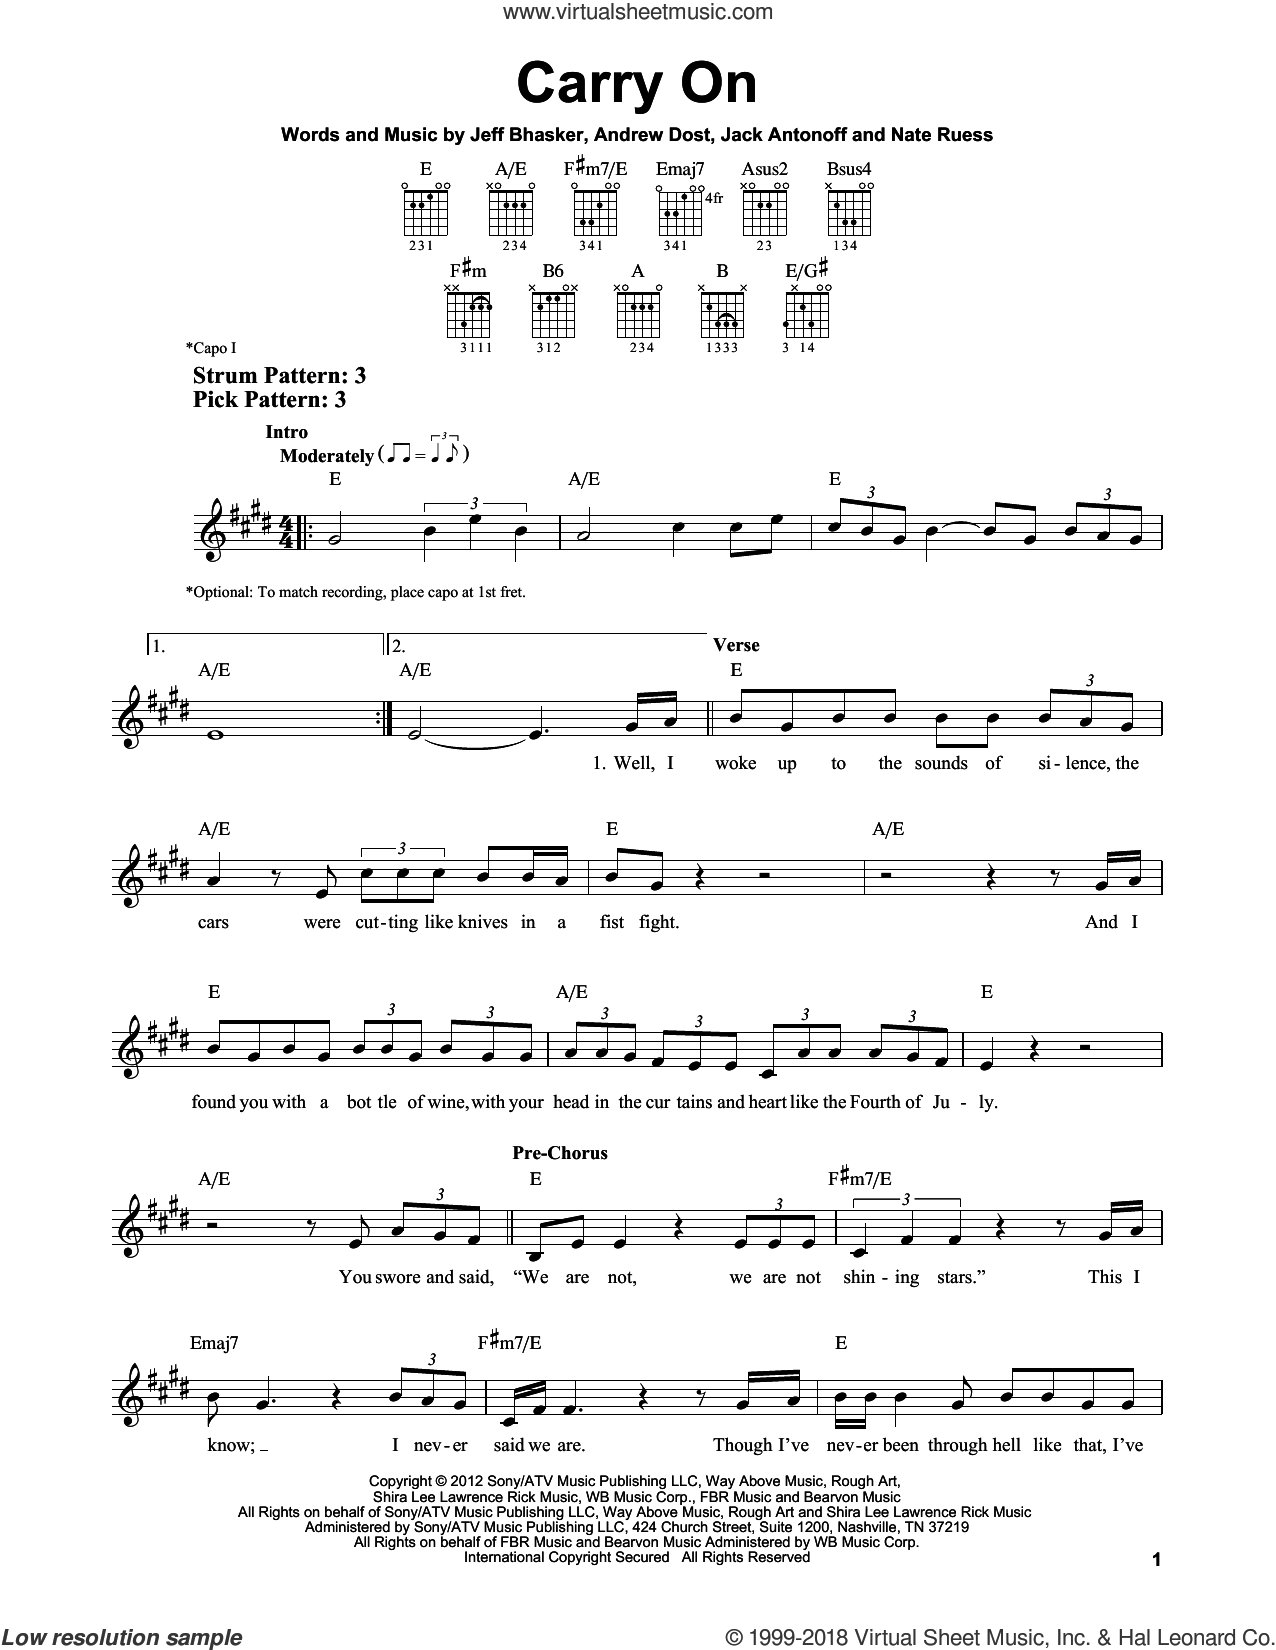 Carry On sheet music for guitar solo (chords) by Fun, Andrew Dost, Jack Antonoff, Jeff Bhasker and Nate Ruess, easy guitar (chords)